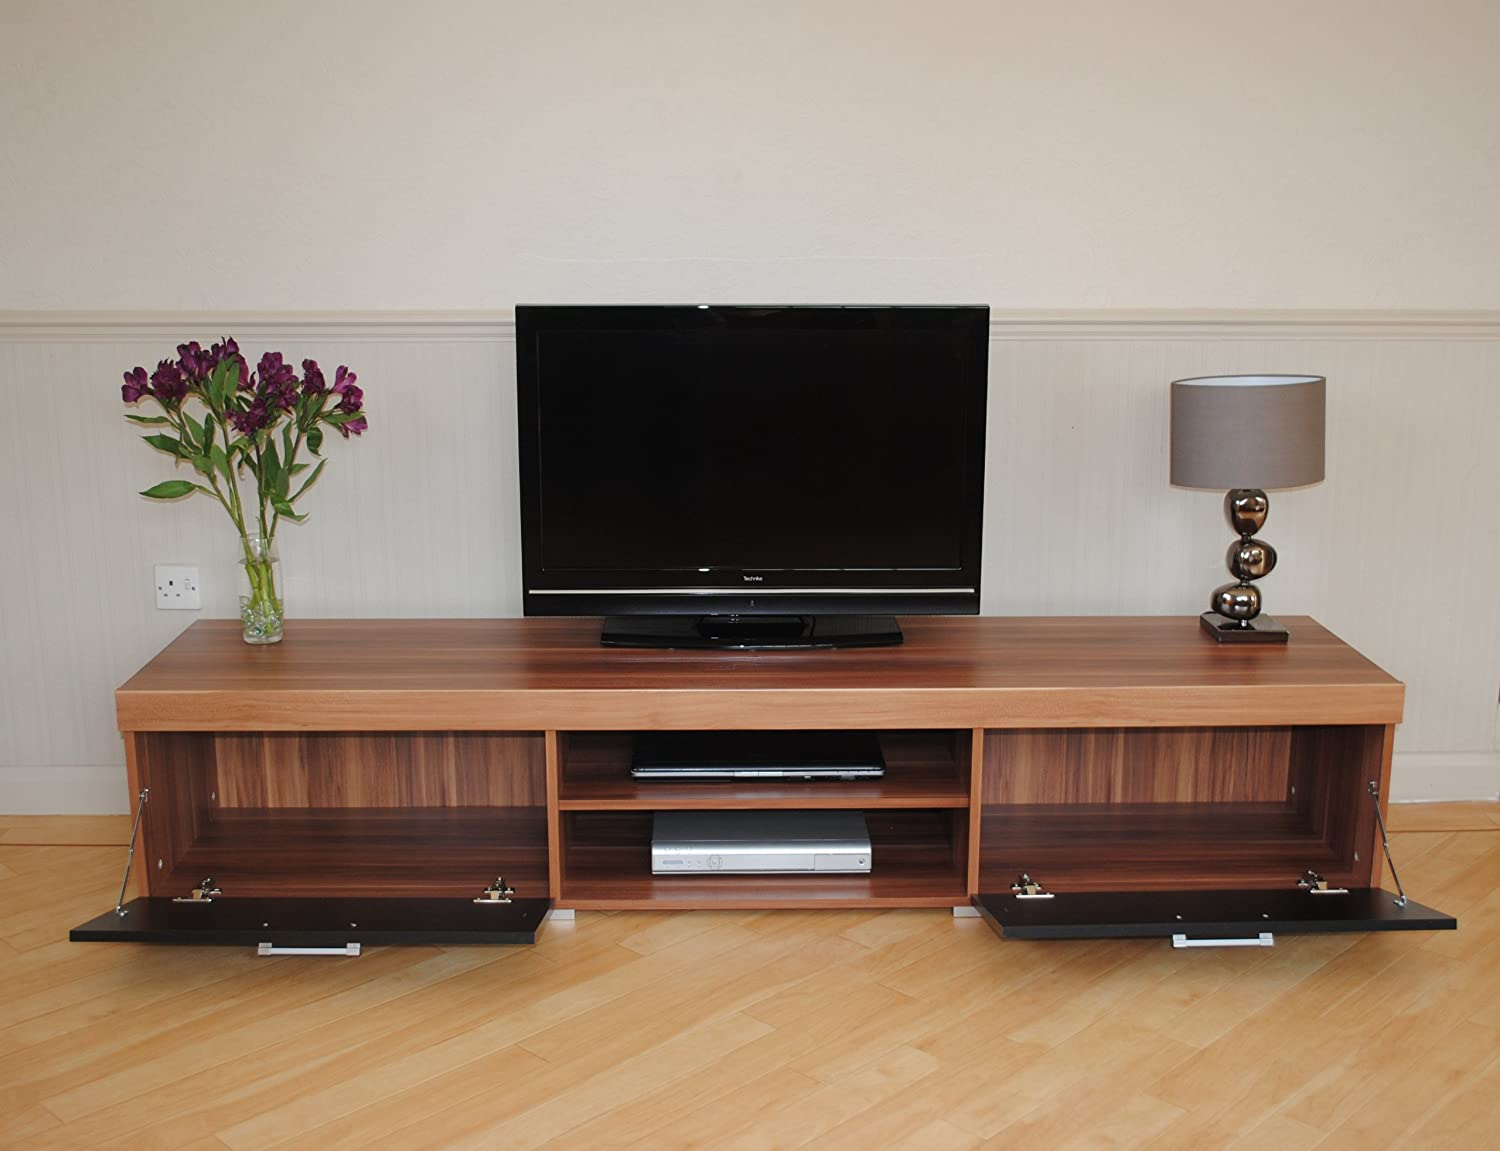 livingroom designs design interior ideas living room unit cabinet latest india modern stunning best pictures stand for tv